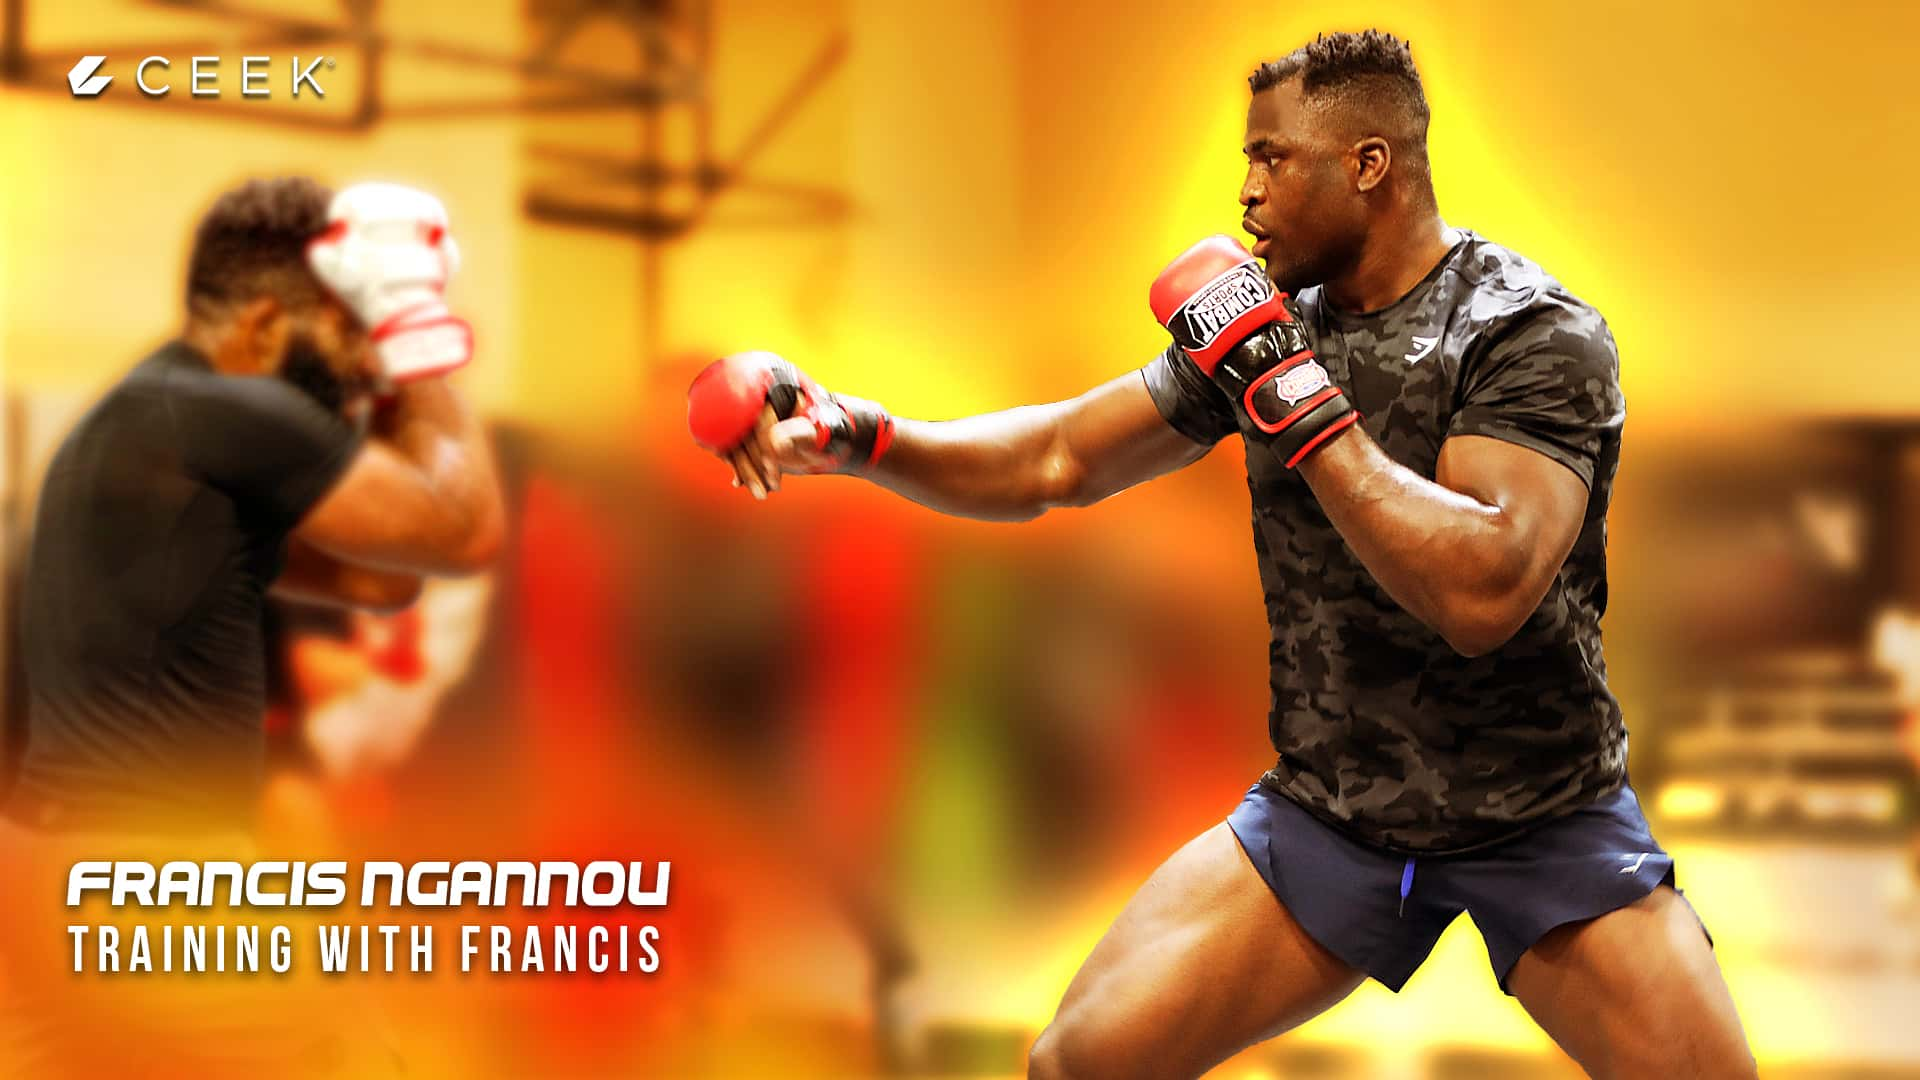 Training with Francis